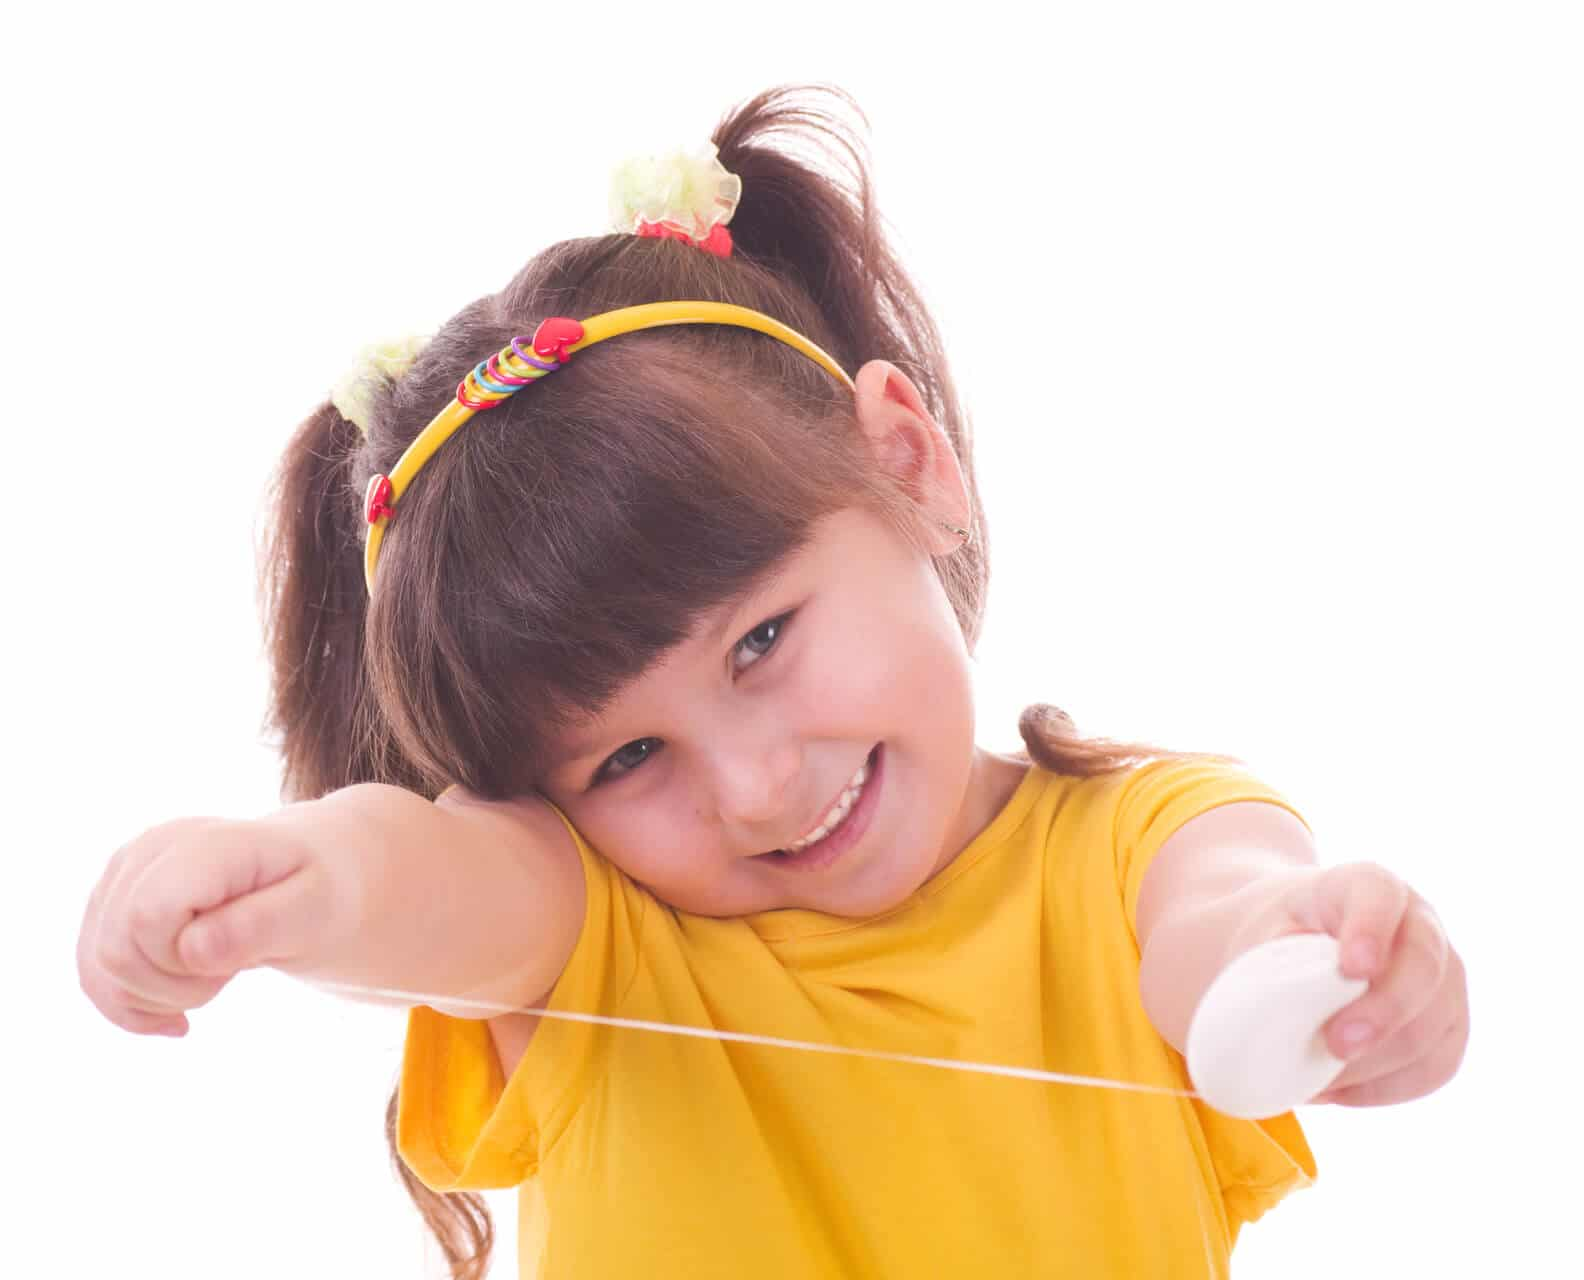 What does Boca Raton children's dentistry say about flossing?